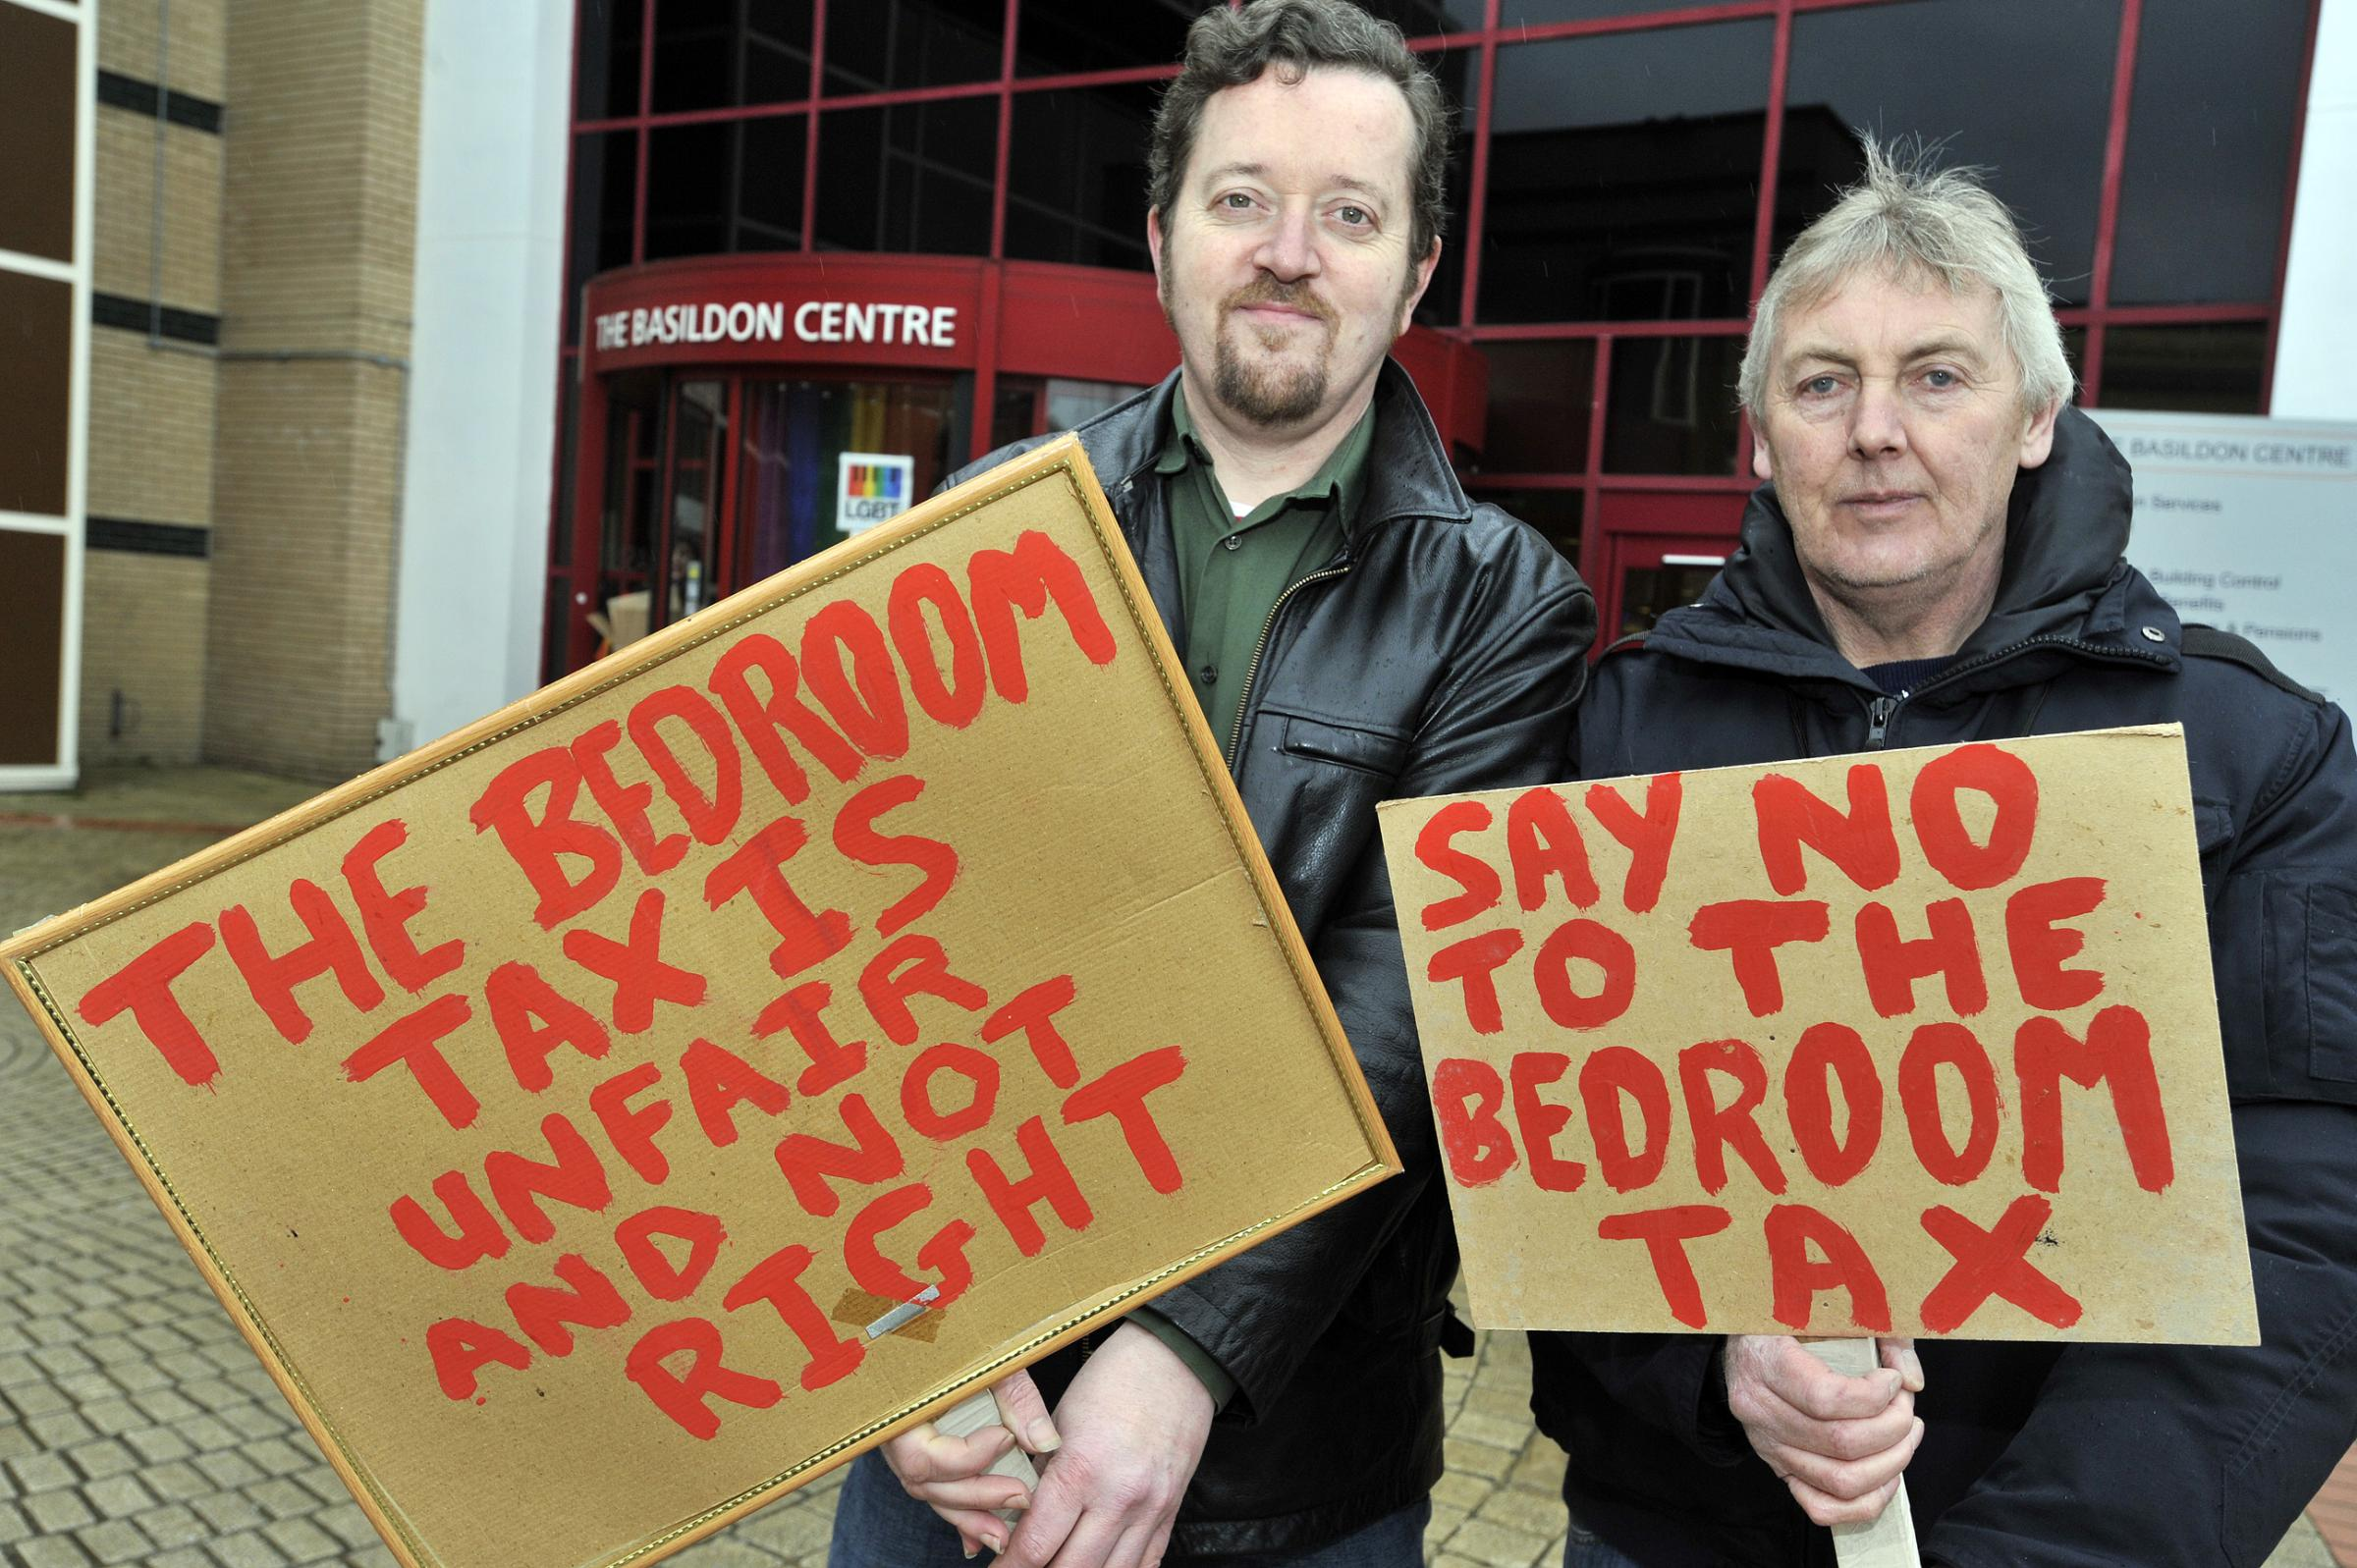 Dave Murray, founder of Basildon Residents Against Bedroom tax and Tony Livesey campaigning outside the Basildon Centre